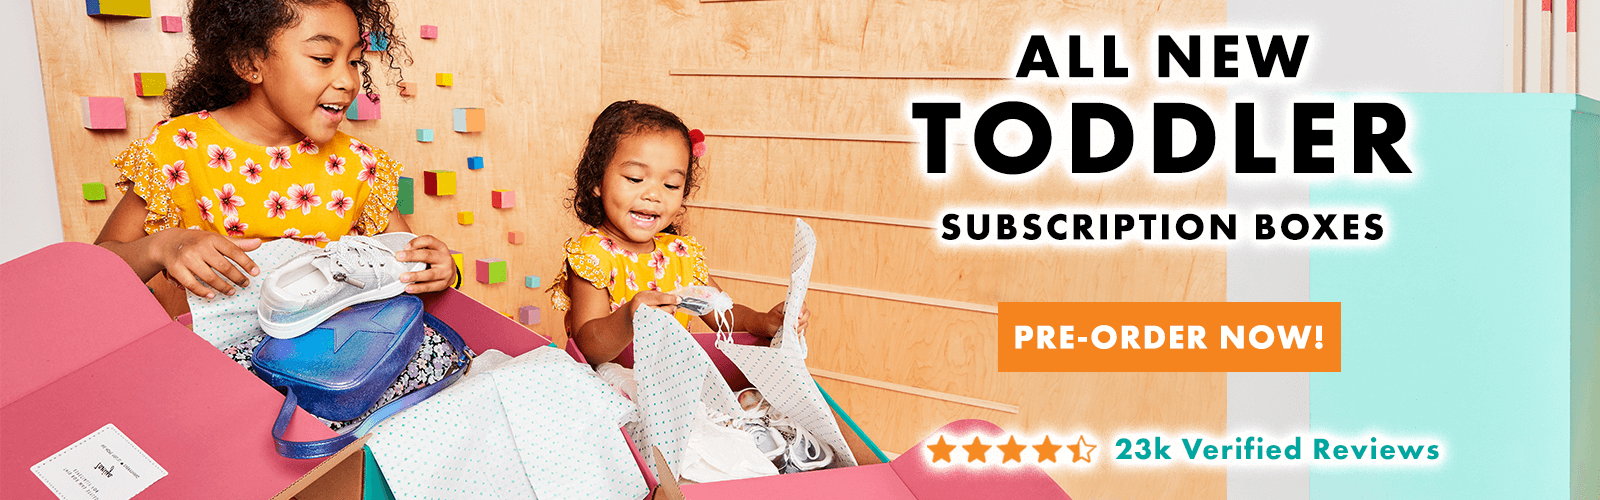 All New Toddler Subscription Boxes